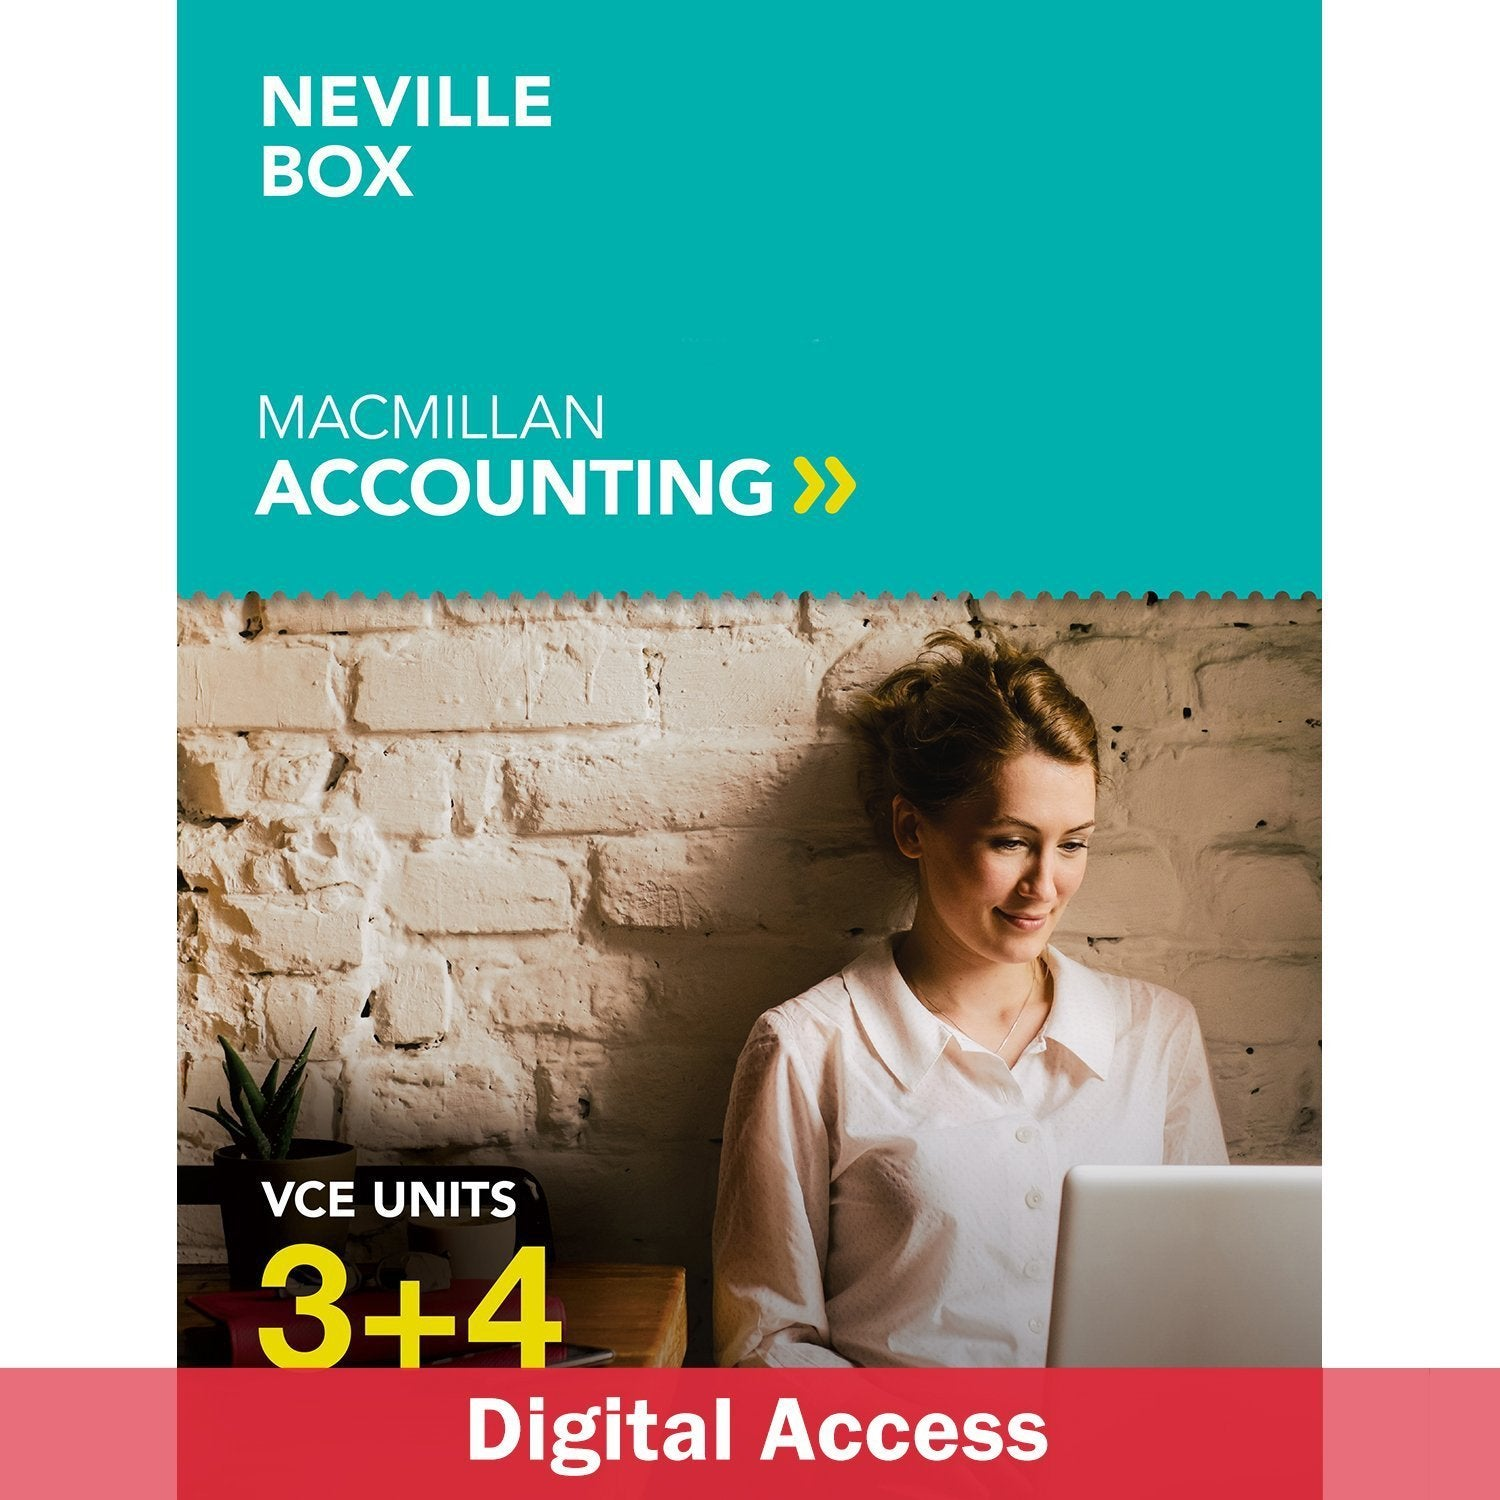 Macmillan Accounting VCE Units 3&4 6E Student Digital access